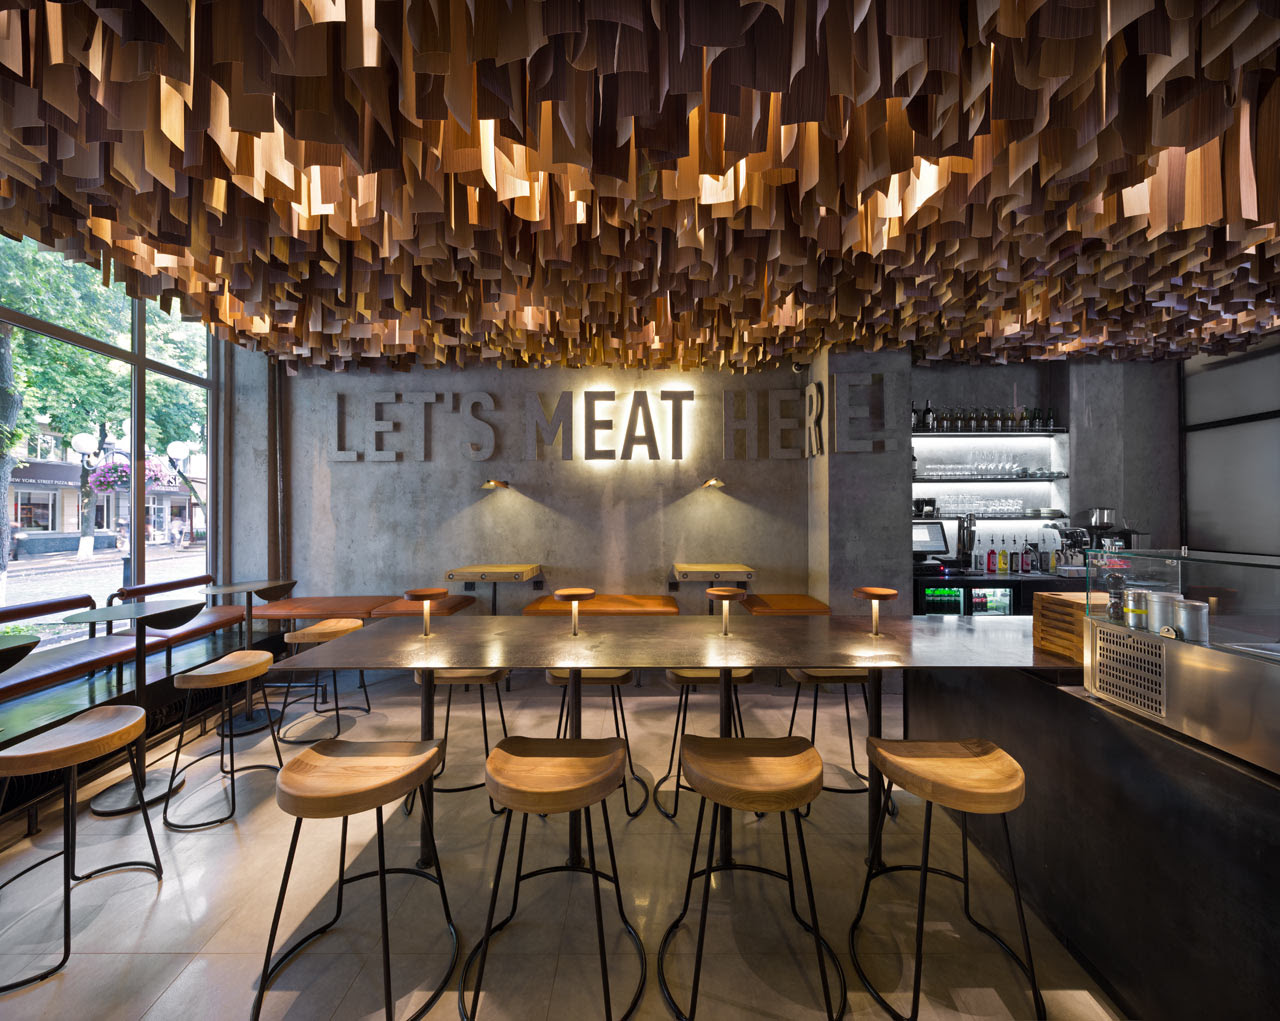 20 Of The World's Best Restaurant And Bar Interior Designs ...